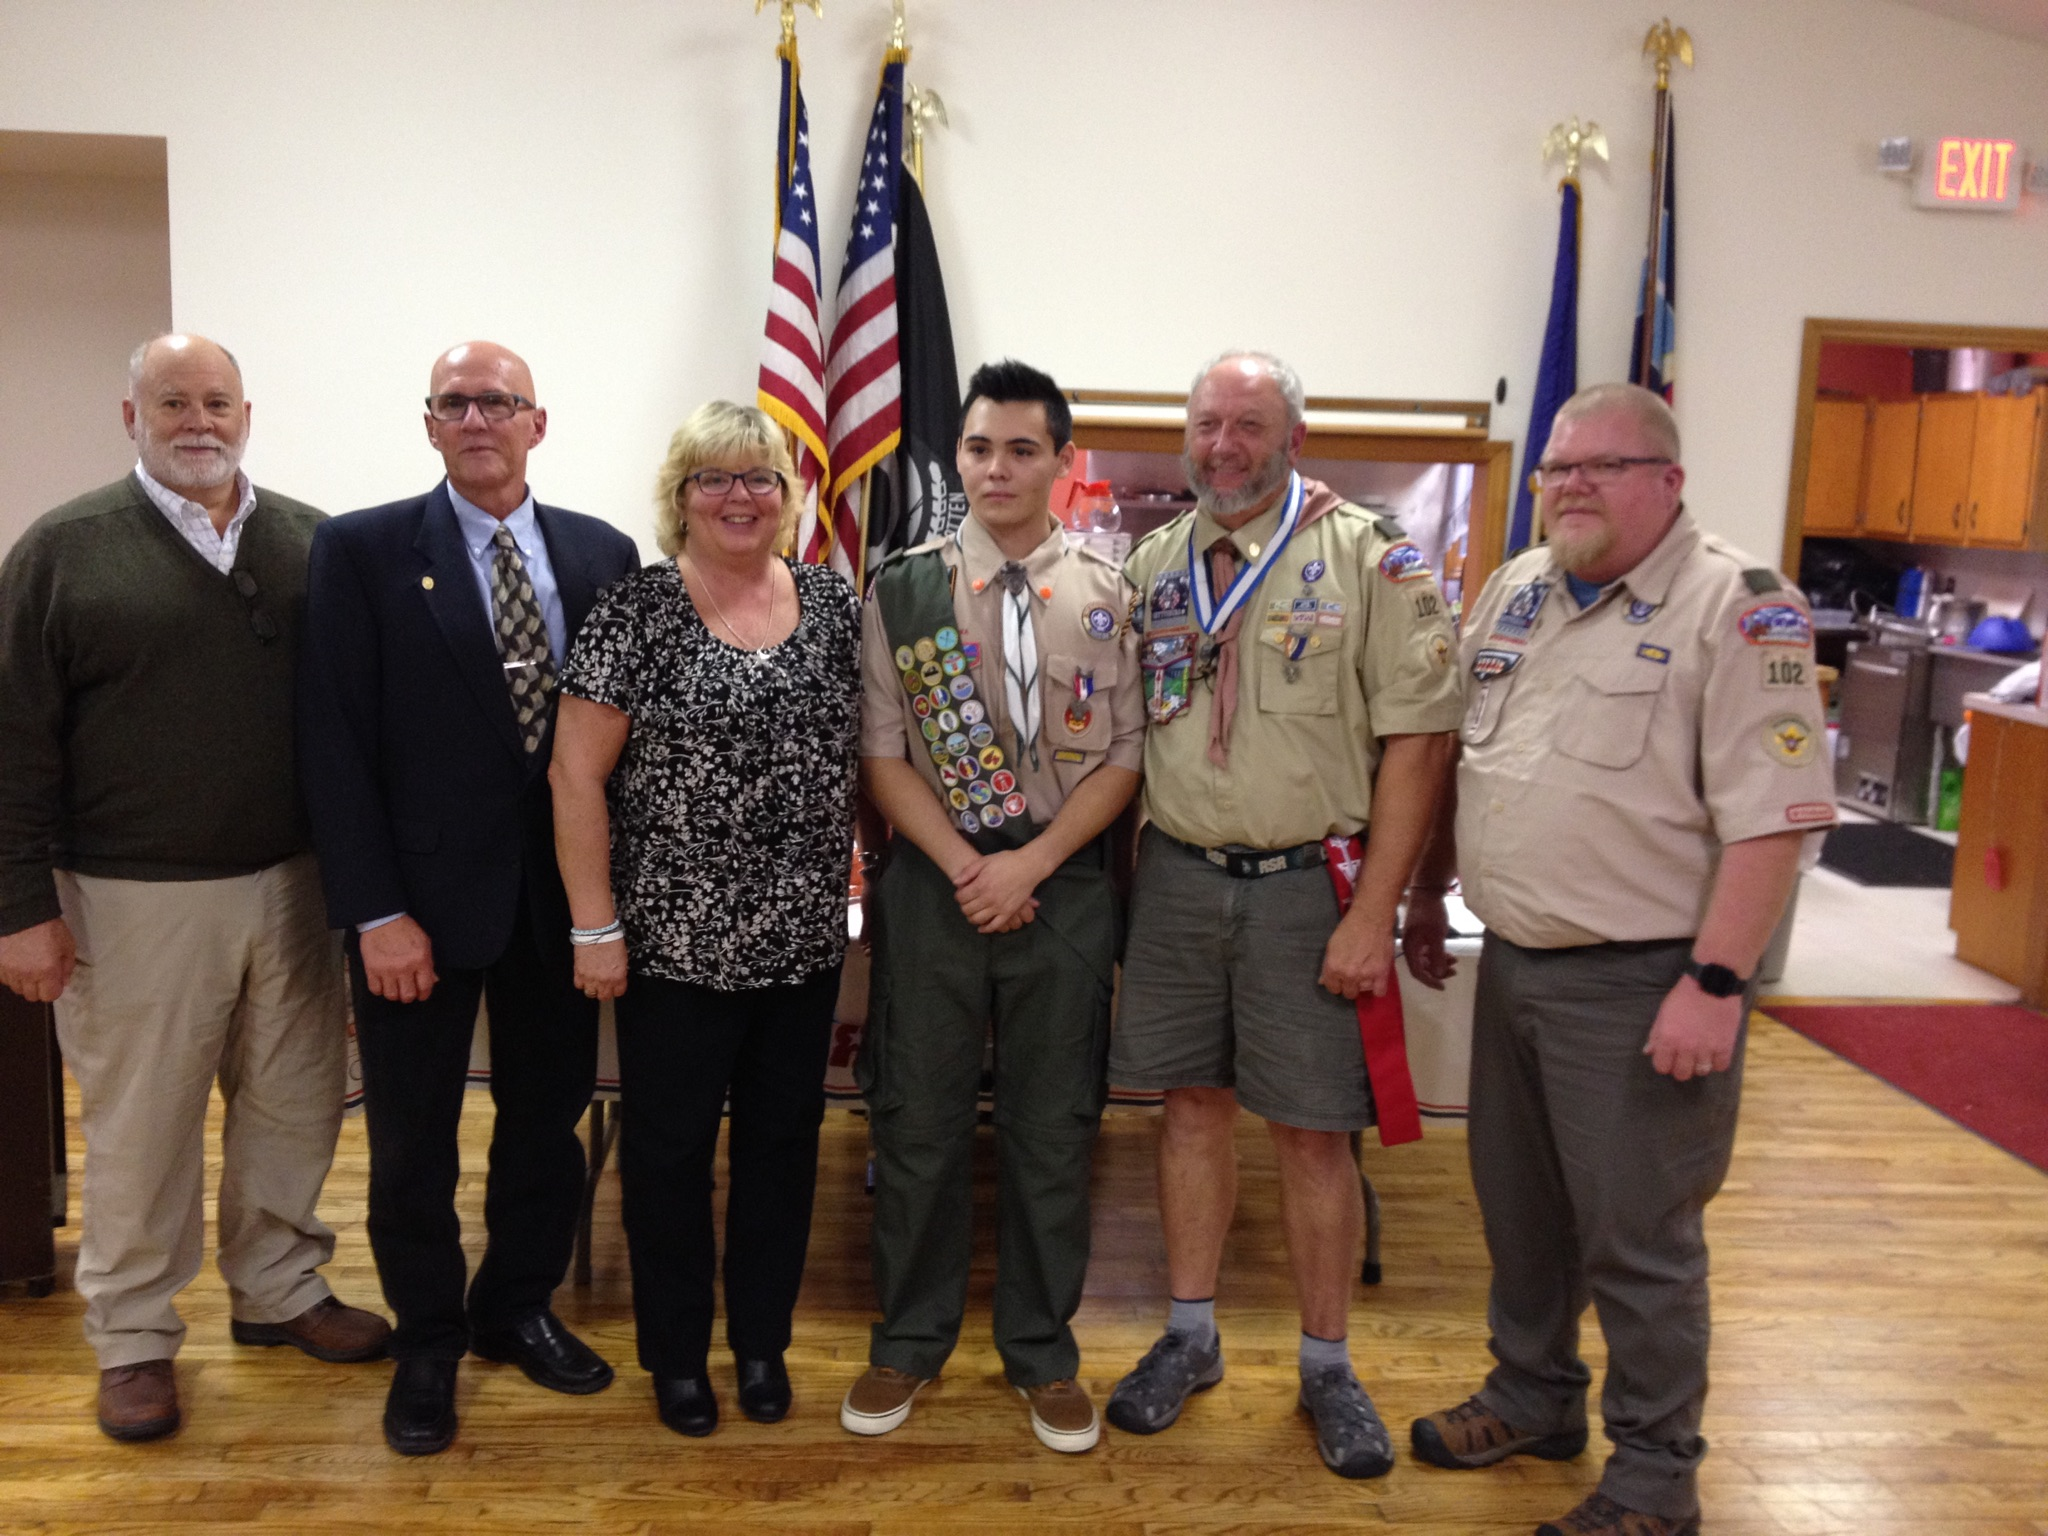 Eagle Scout with family and Scoutmasters